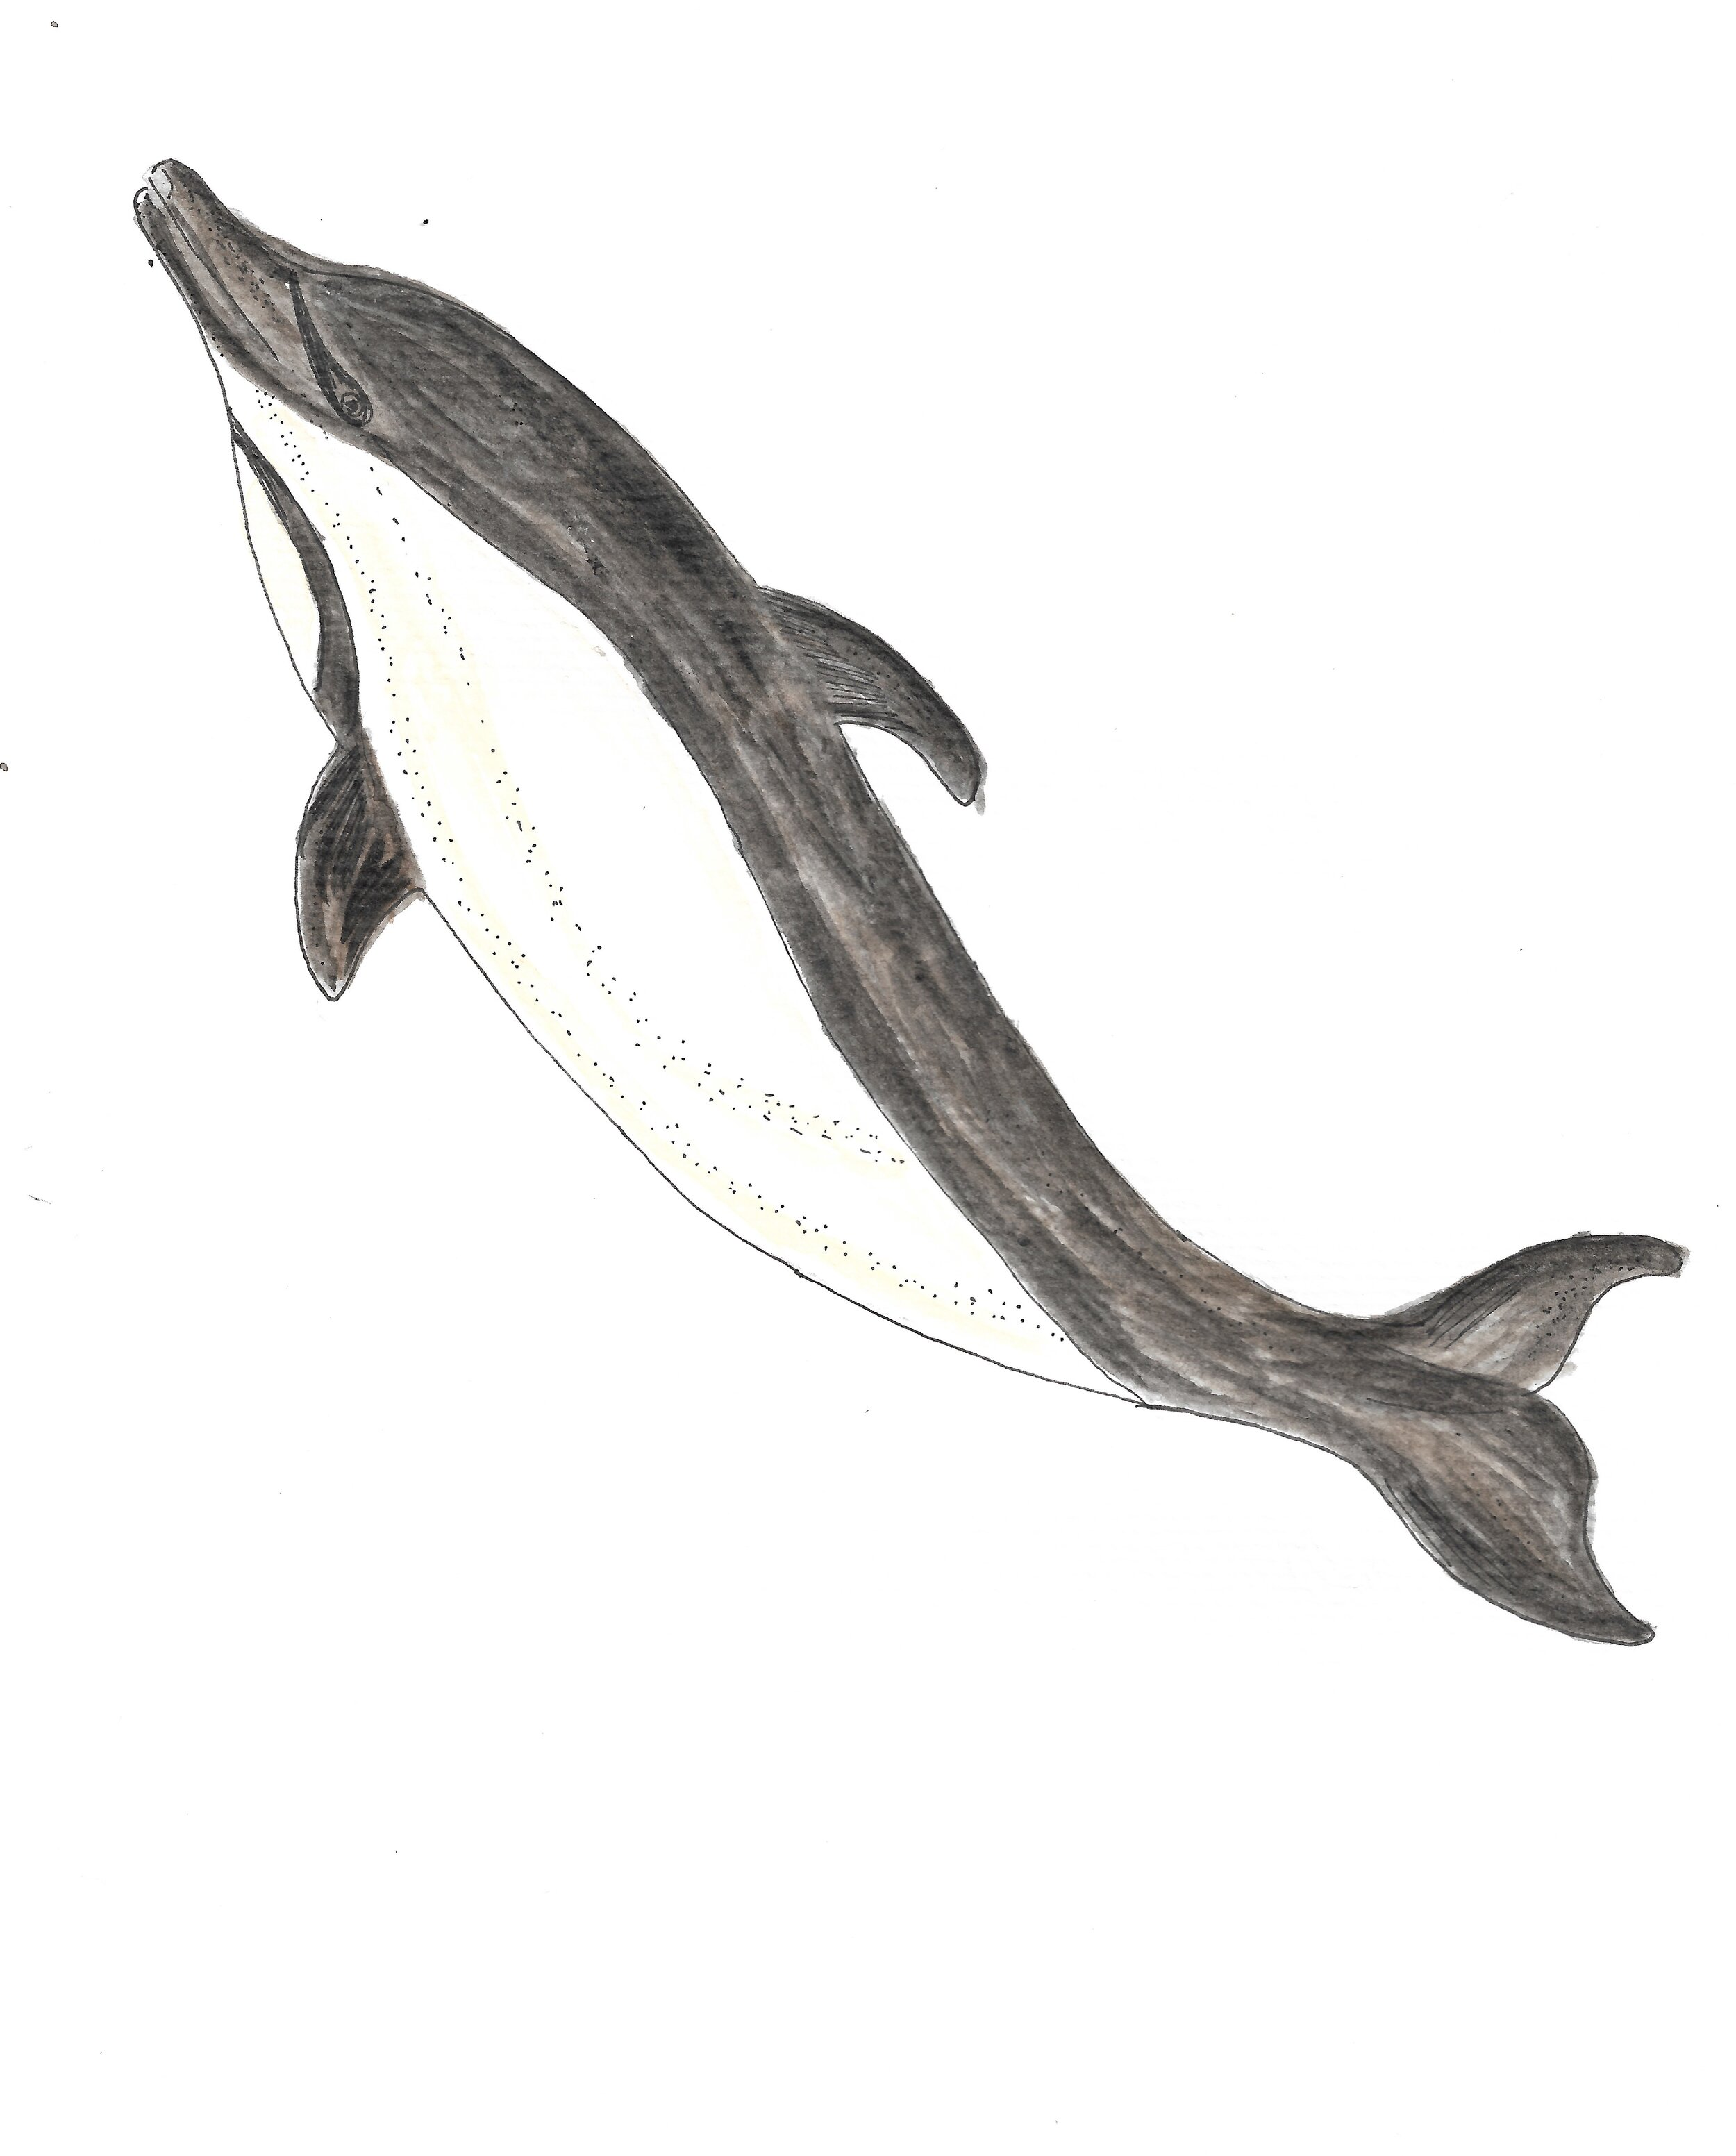 About 30 million years ago, the modern whales evolved. There were the odontocetes whales like dolphins, part of the toothed-whale family...